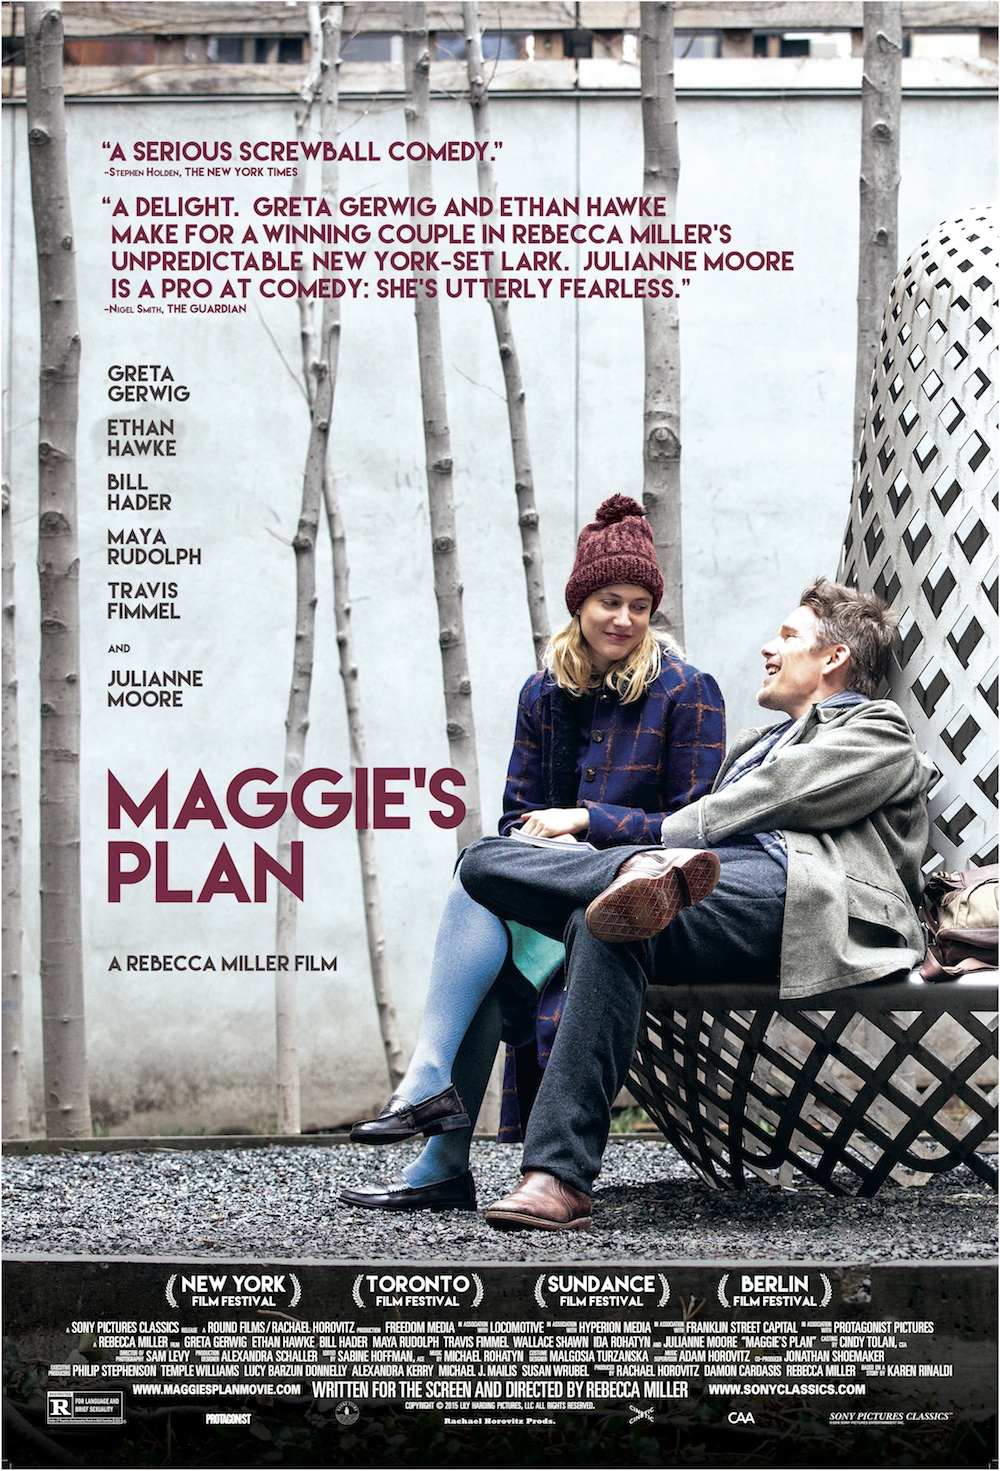 Maggie's Plan Review